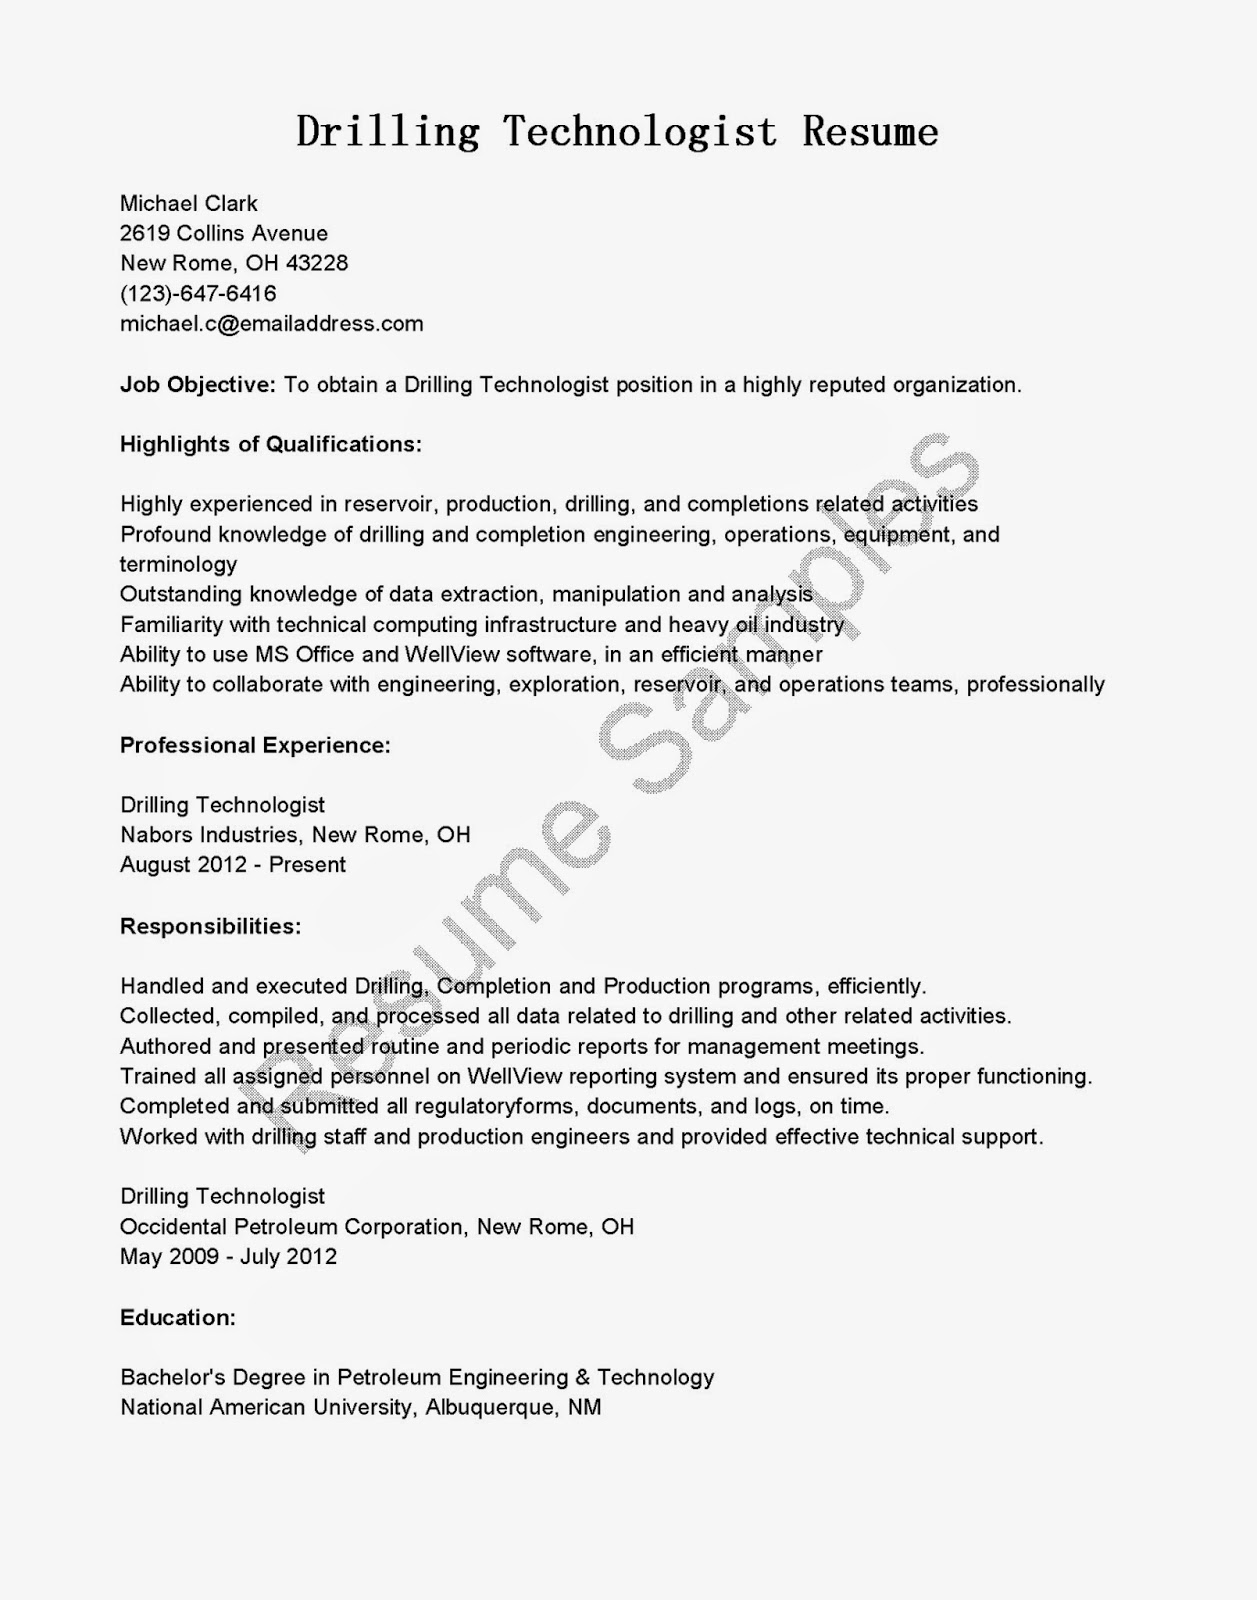 Driller Resume Example Resume Samples Drilling Technologist Resume Sample